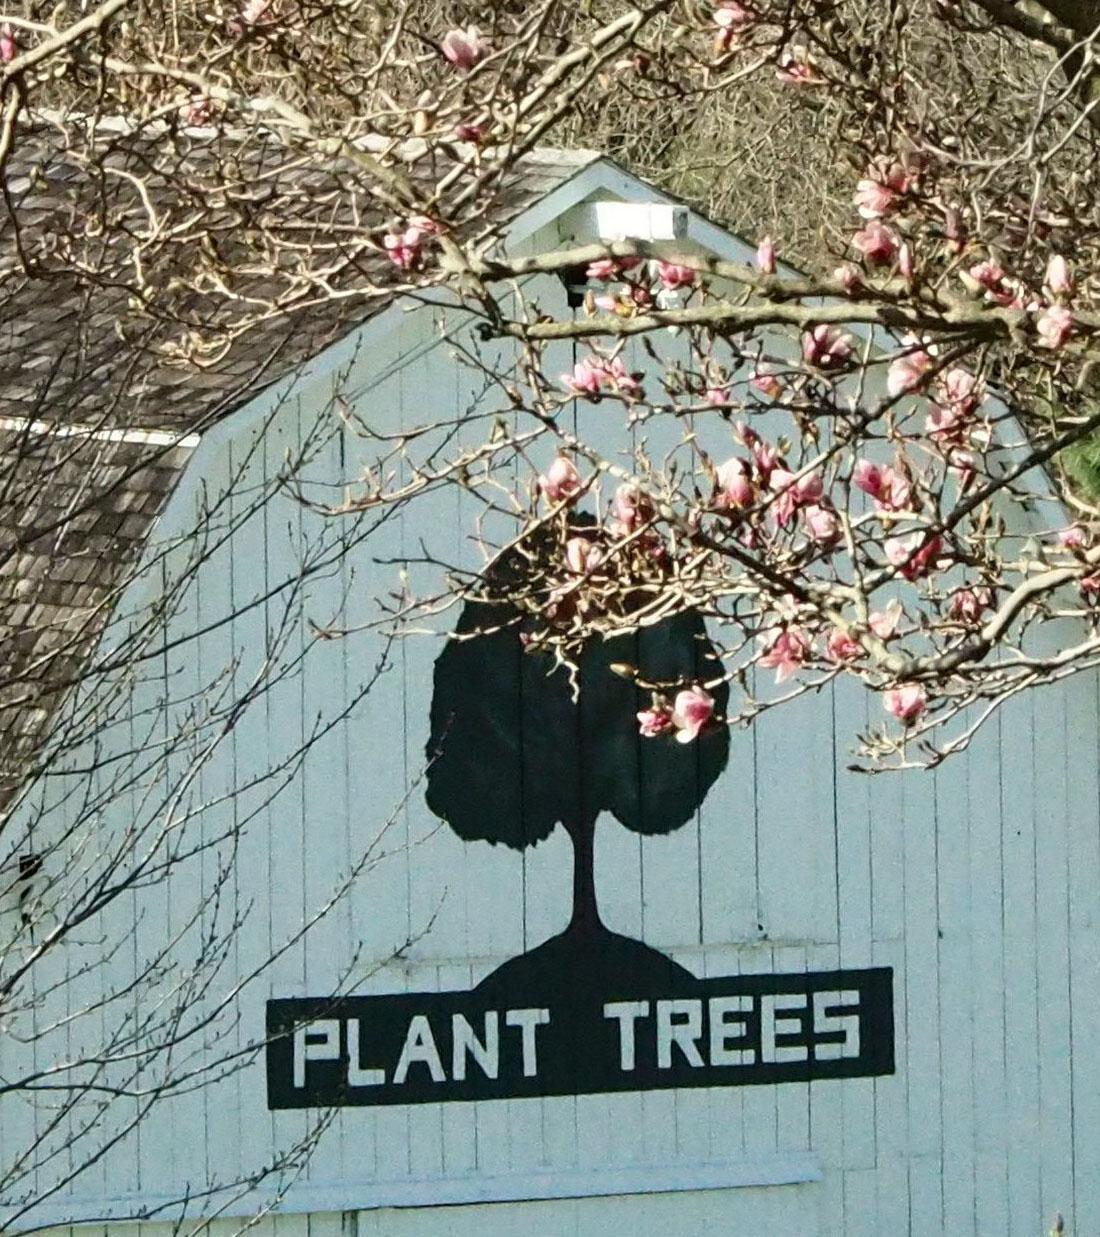 Plant Trees sign on Barn